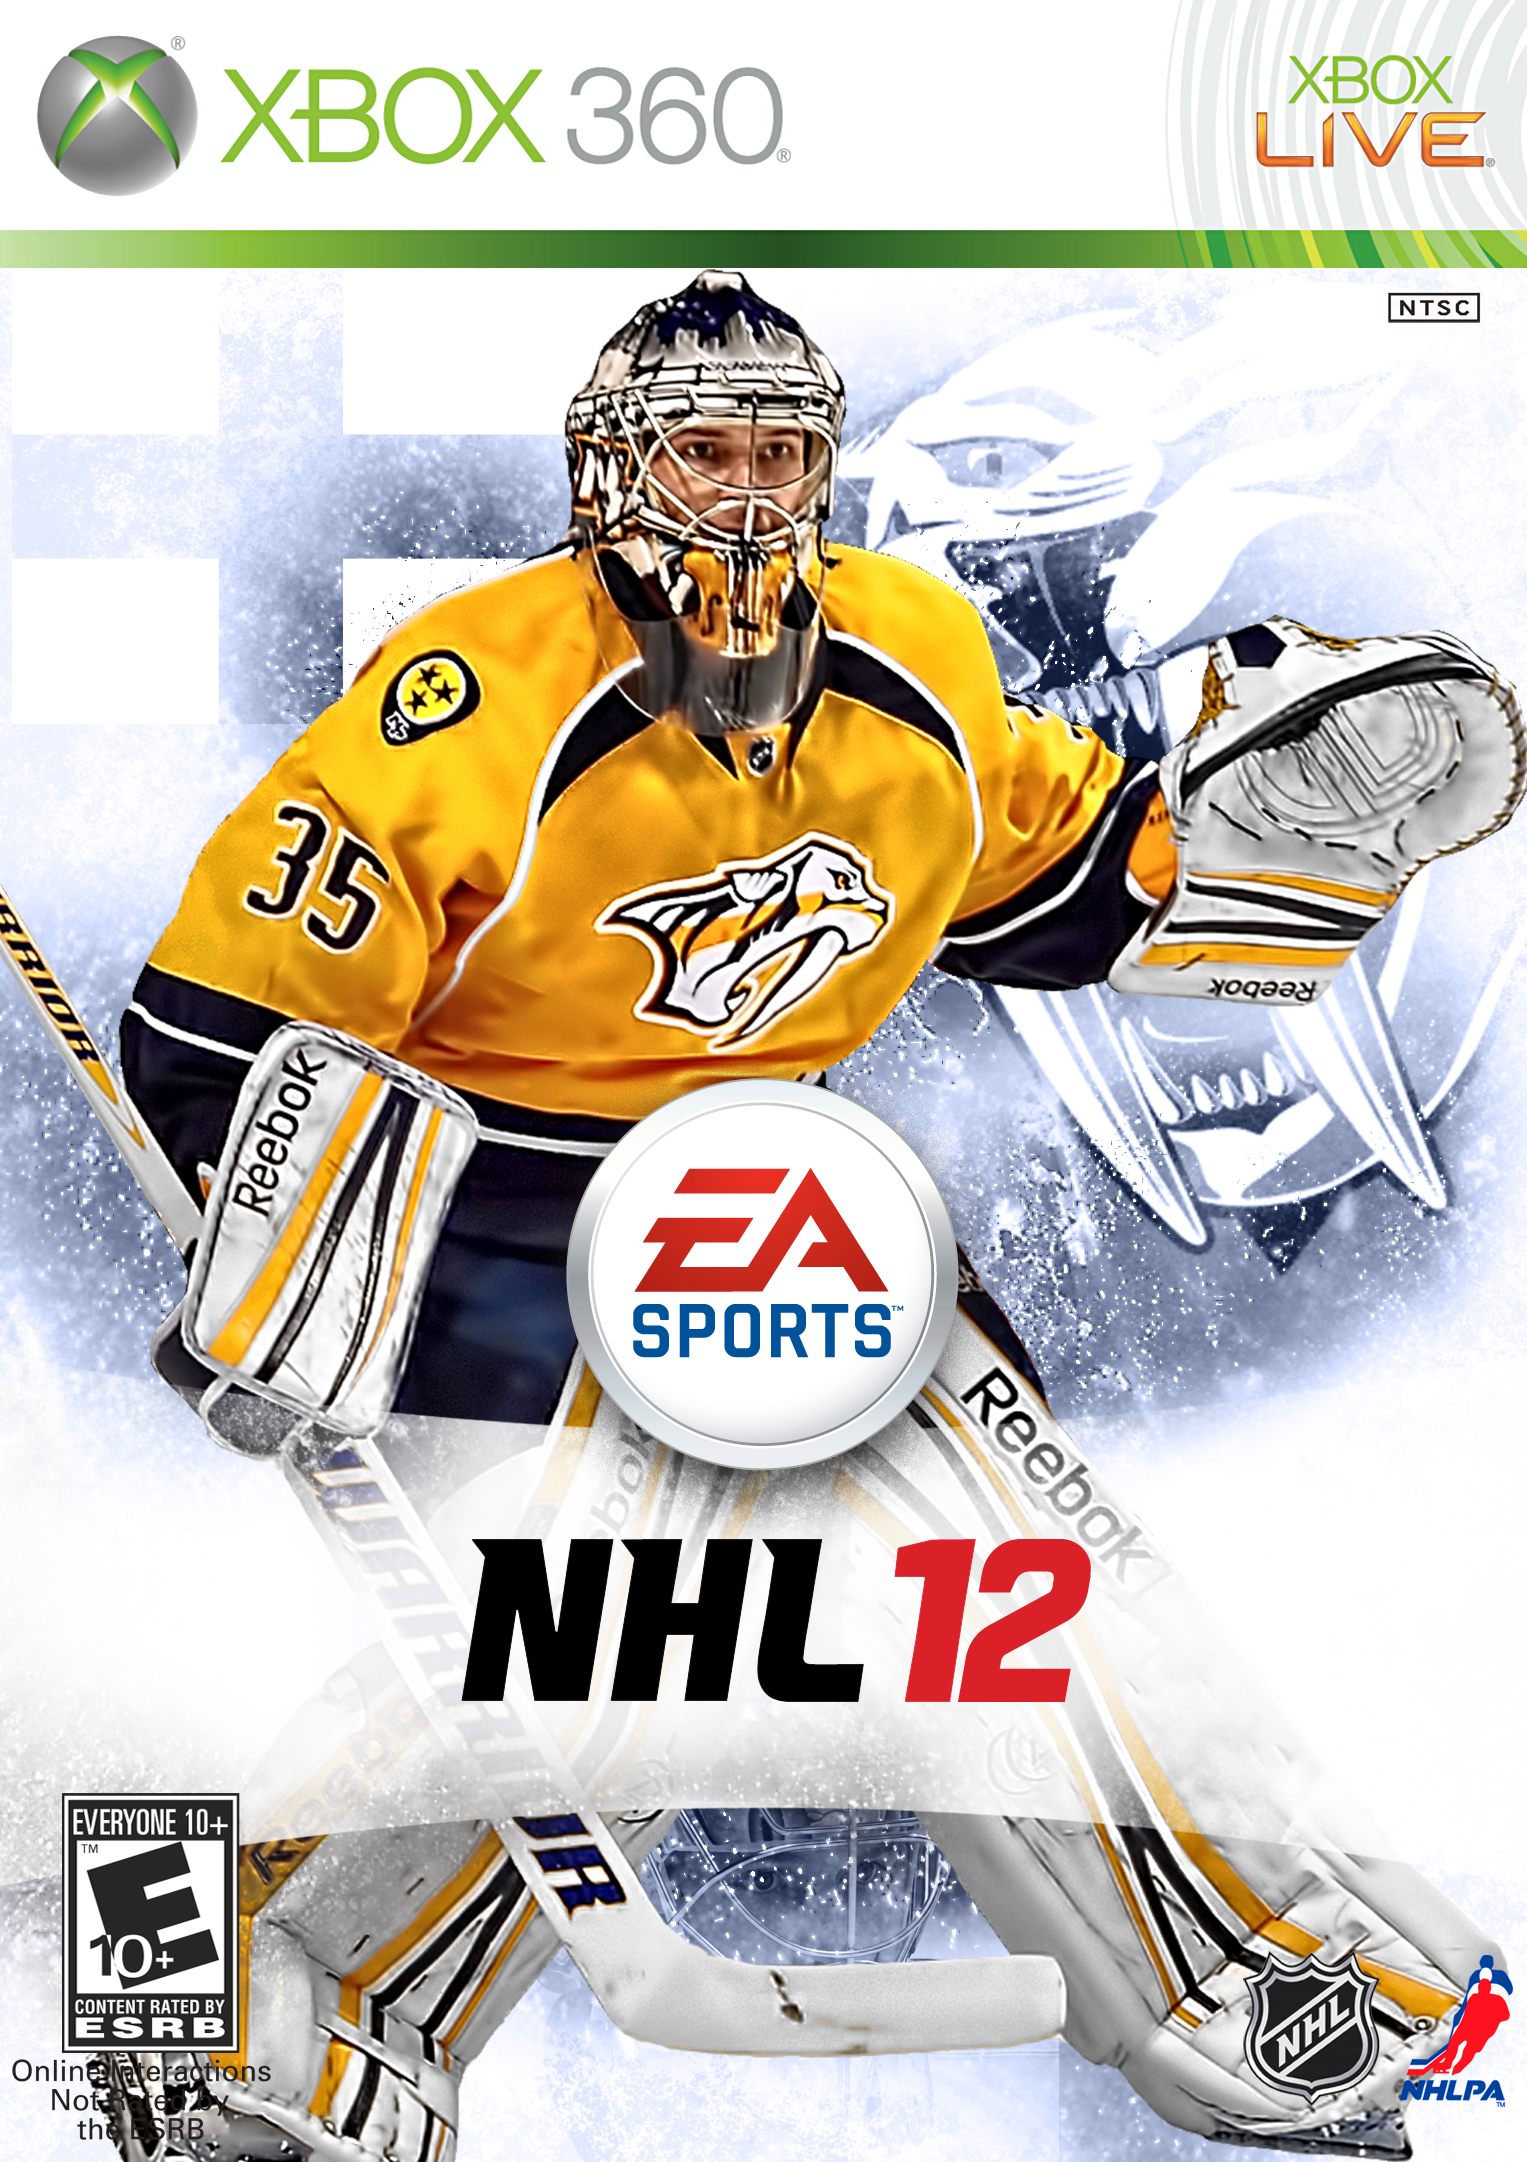 This should be the cover for NHL13